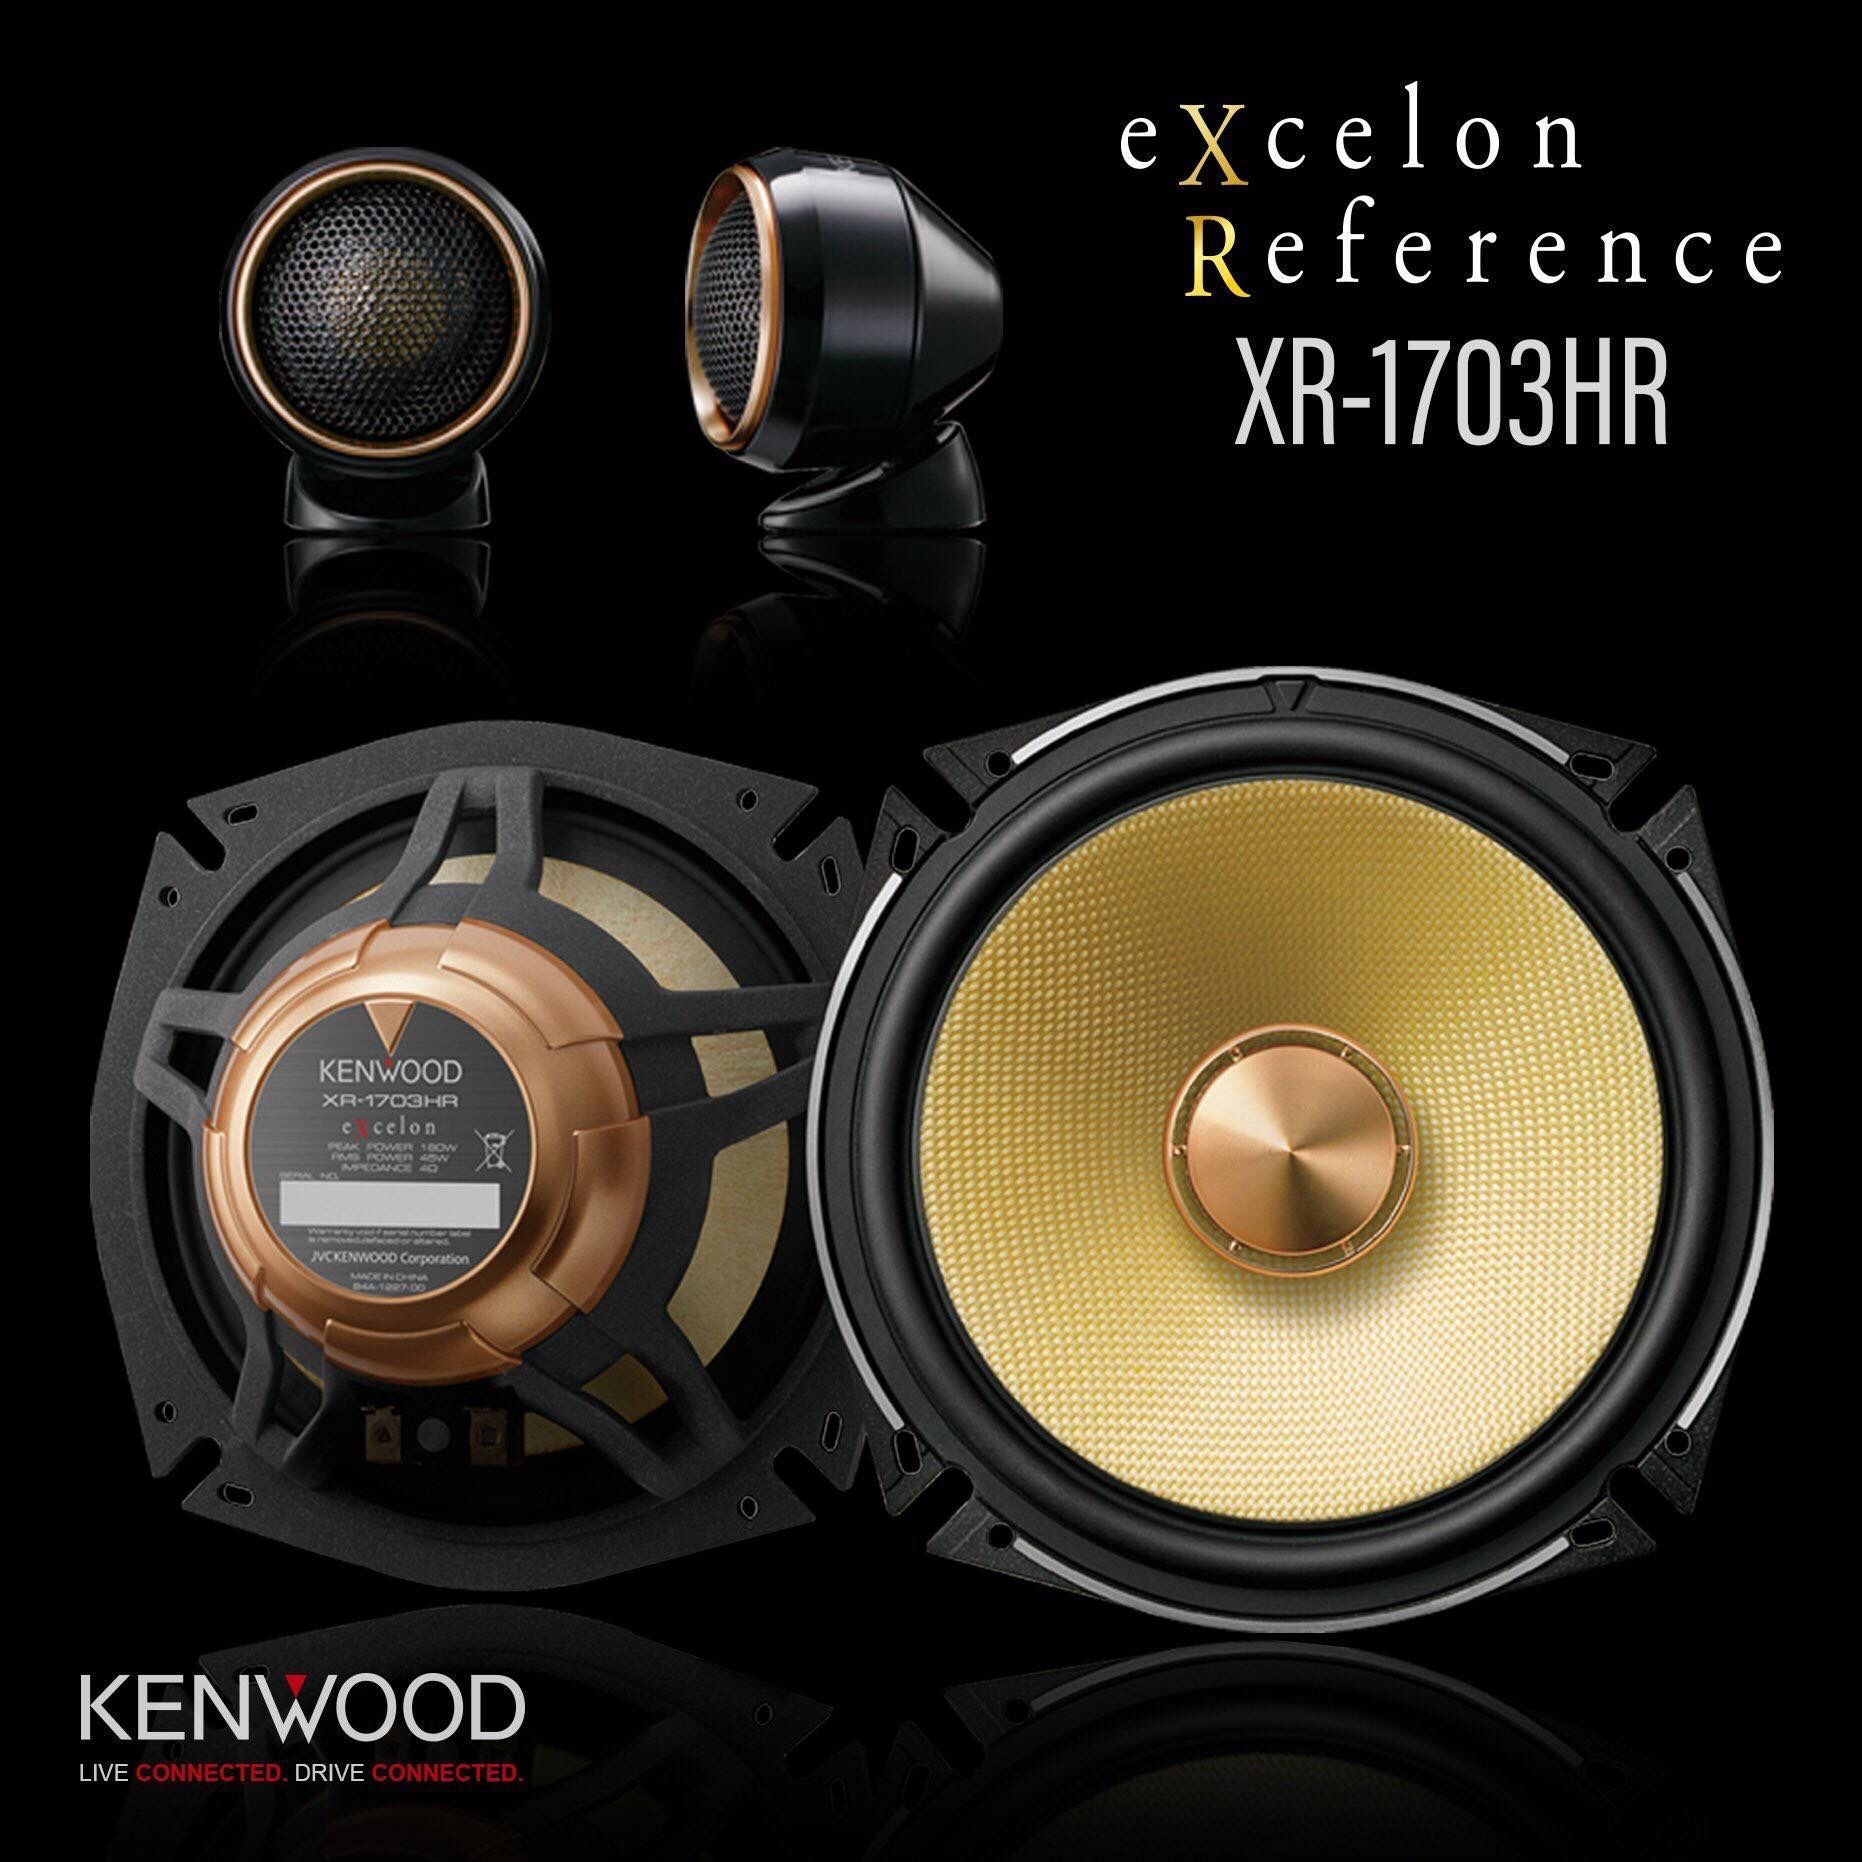 "KENWOOD Hi-Res Audio #componentspeakers The NEW Kenwood eXcelon Reference XR-1703HR Component Speaker System.  Features: • Magnetic Circuit with Aluminum Ring • Glass Fiber Diaphragm • 1"" Soft Dome Tweeter  #soundgarageqld #kenwoodexcelonreference #soundgaragenorthlakes #kenwood #kenwoodaudio #speakers #HiResAudio #soundgarage #speakersystem #caraudio #componentspeakers KENWOOD Hi-Res Audio #componentspeakers The NEW Kenwood eXcelon Reference XR-1703HR Component Speaker System.  Features #componentspeakers"